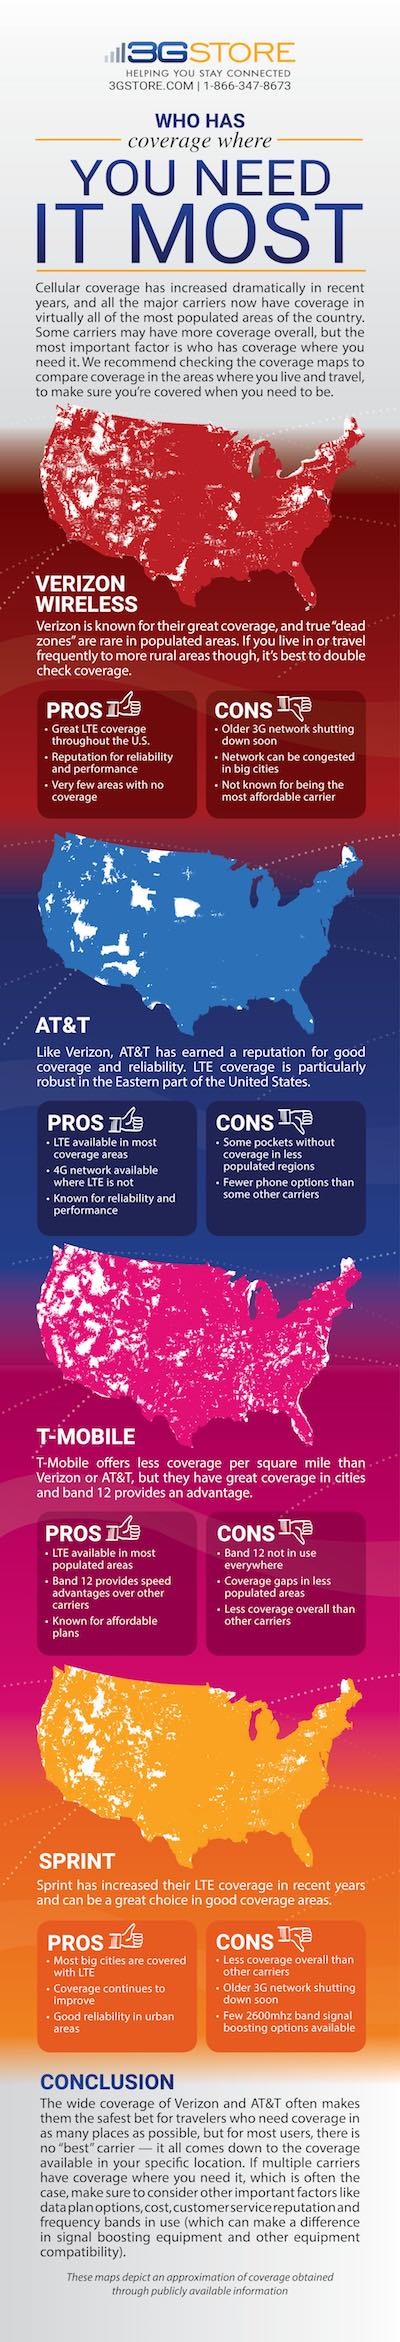 Infographic comparing cellular coverage of top U.S. carriers. Verizon vs. AT&T vs. T-Mobile vs. Sprint.